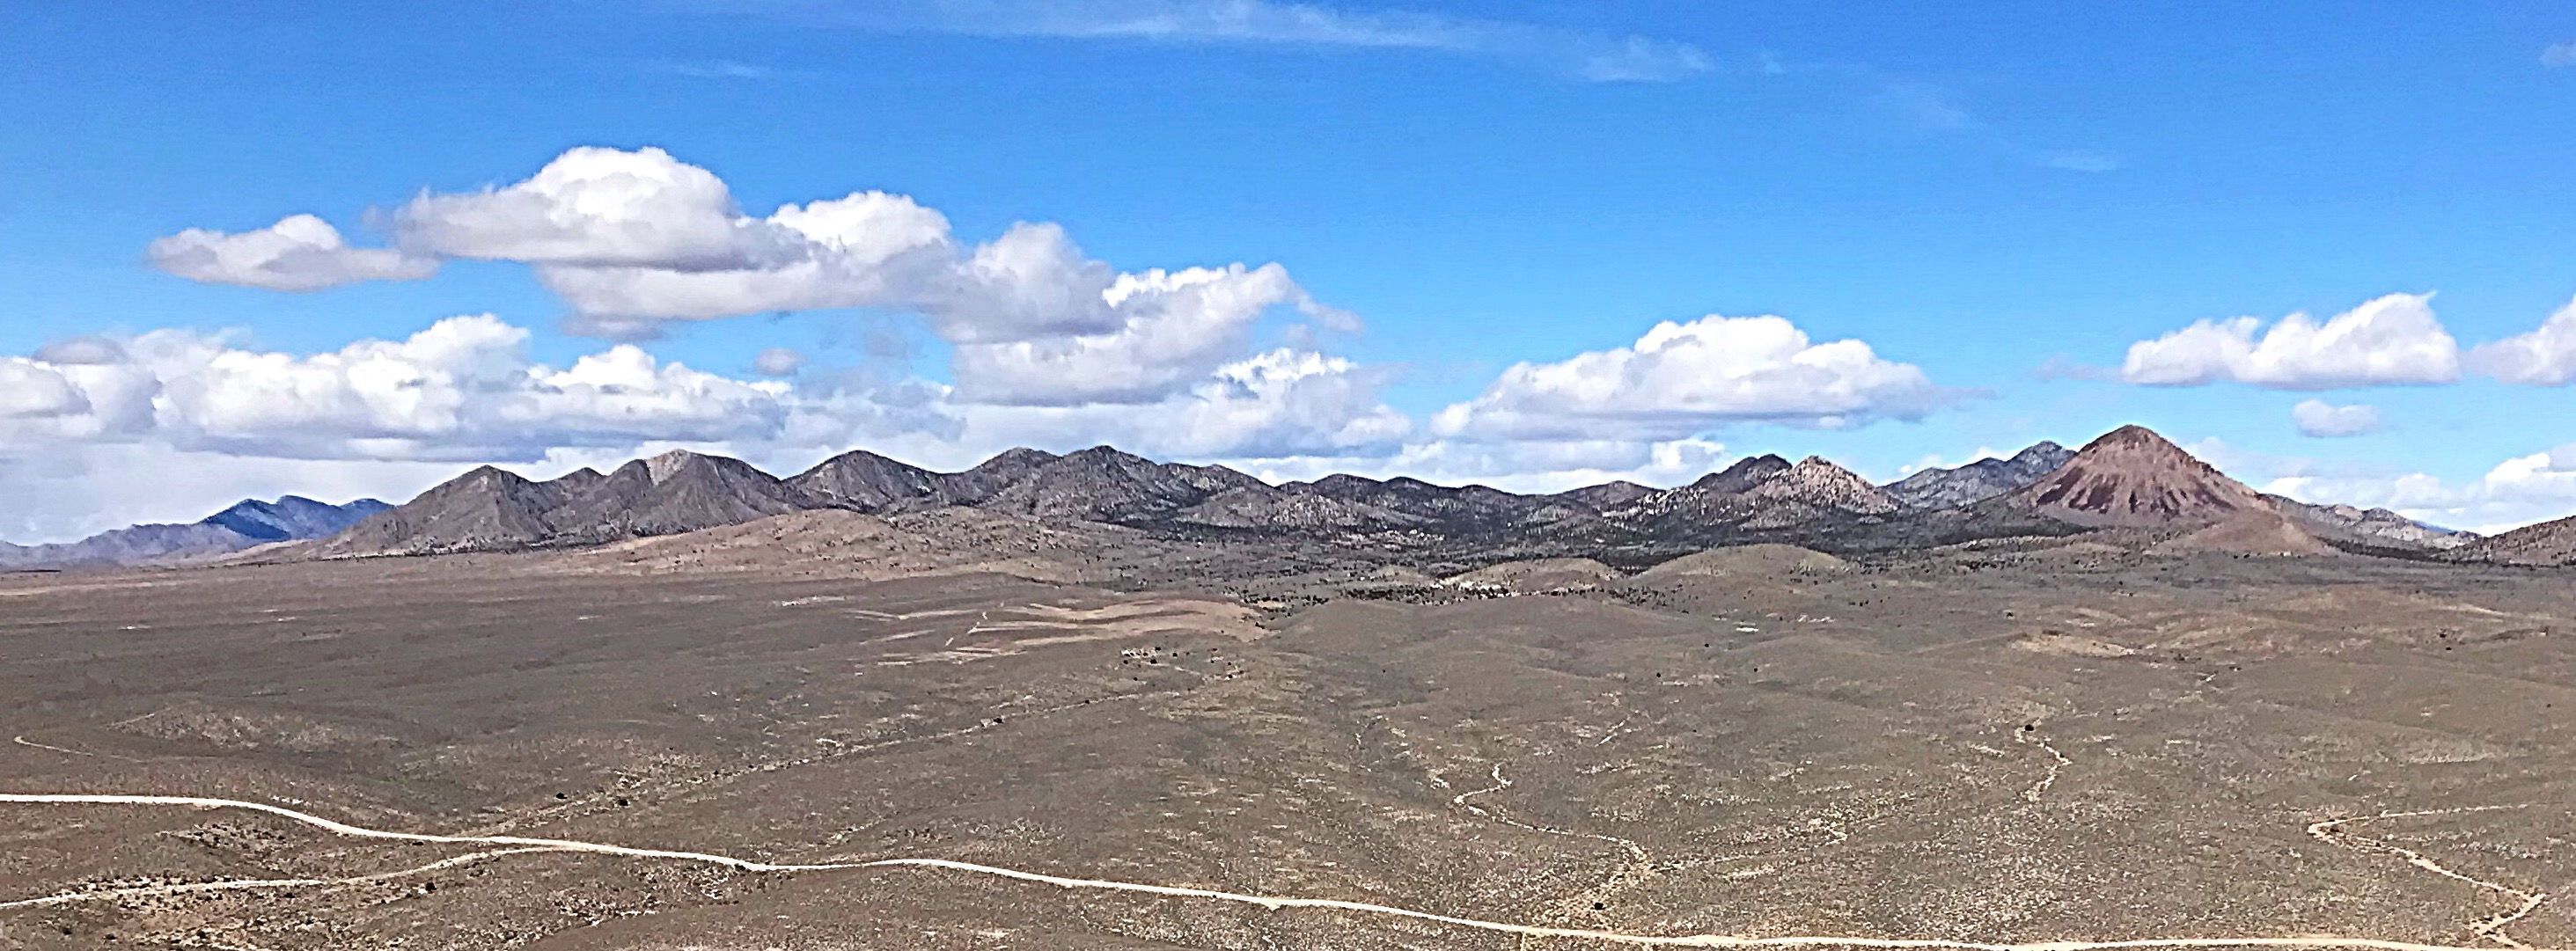 I was first attracted to the mountains between Lund and Hiko, Nevada when I spotted Burnt Peak. It is the cone shaped Summit on the right side of this ridge.